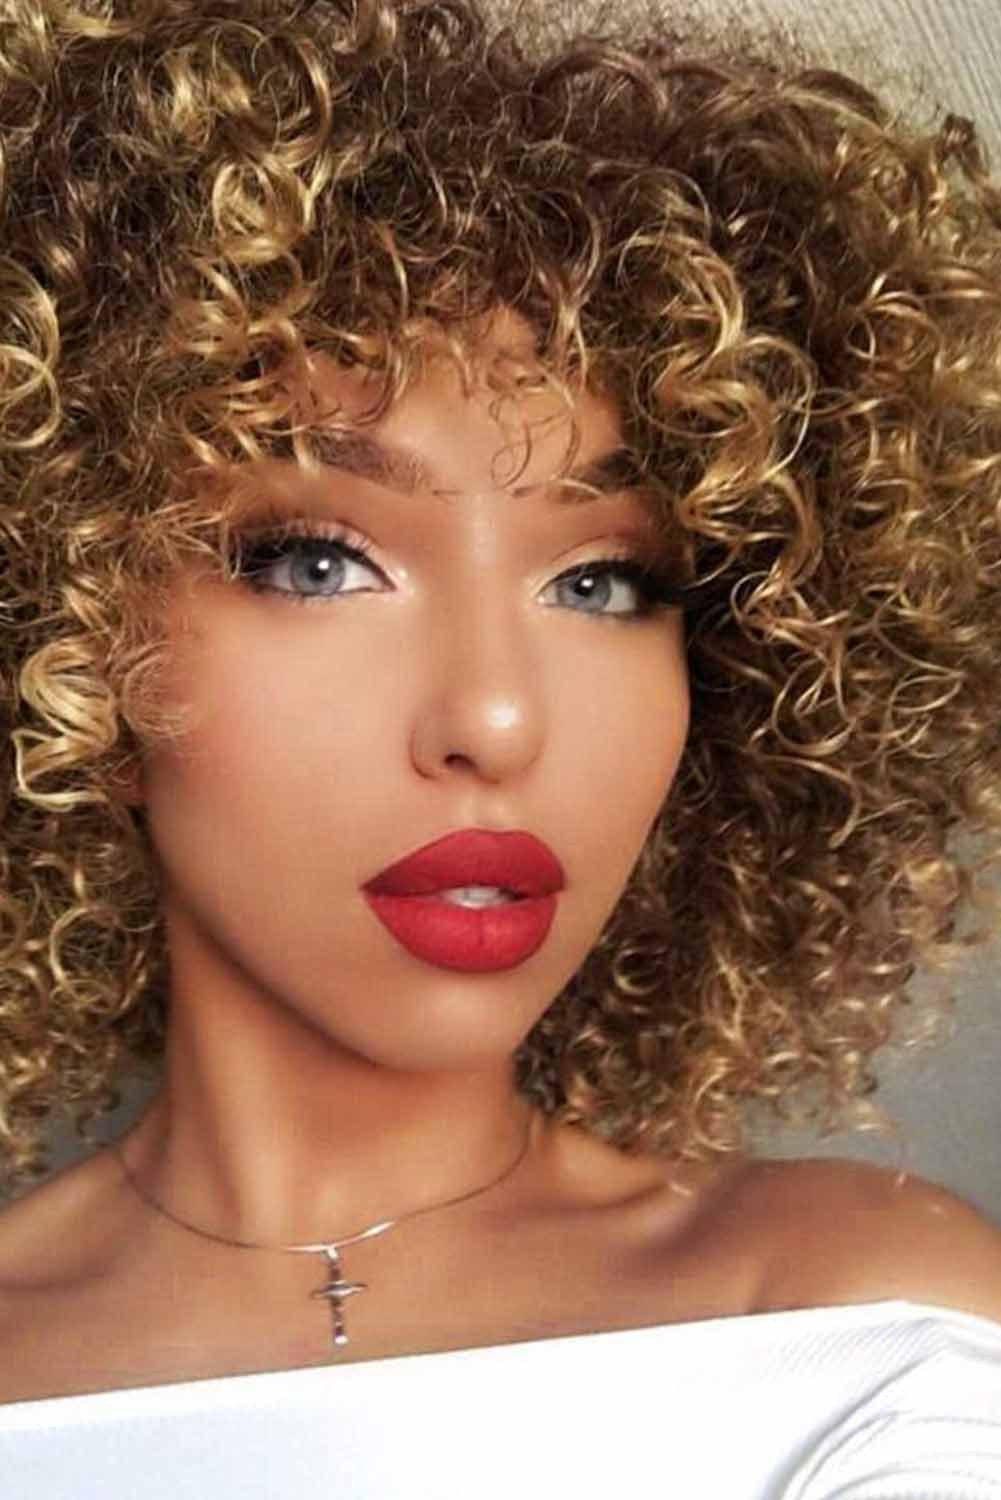 Fashion Small Curly Wig Hair Wigs Discount Designer Fashion Clothes Shoes Bags Women Men Kids Children Black Owned Business